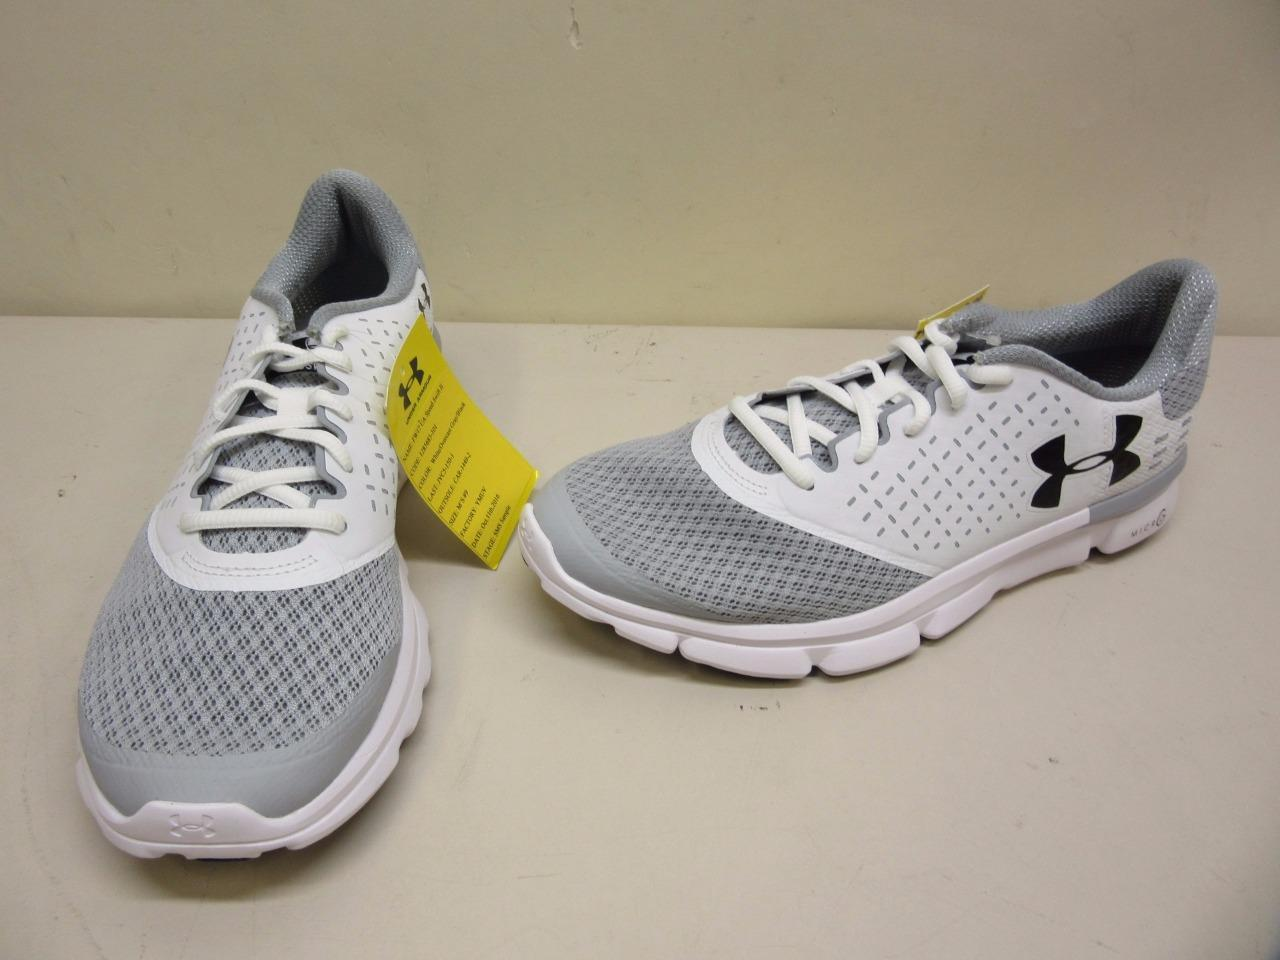 Men's Under Armour FW17 Speed Swift II SMS Sample Athletic Shoe- Size 9 Gray